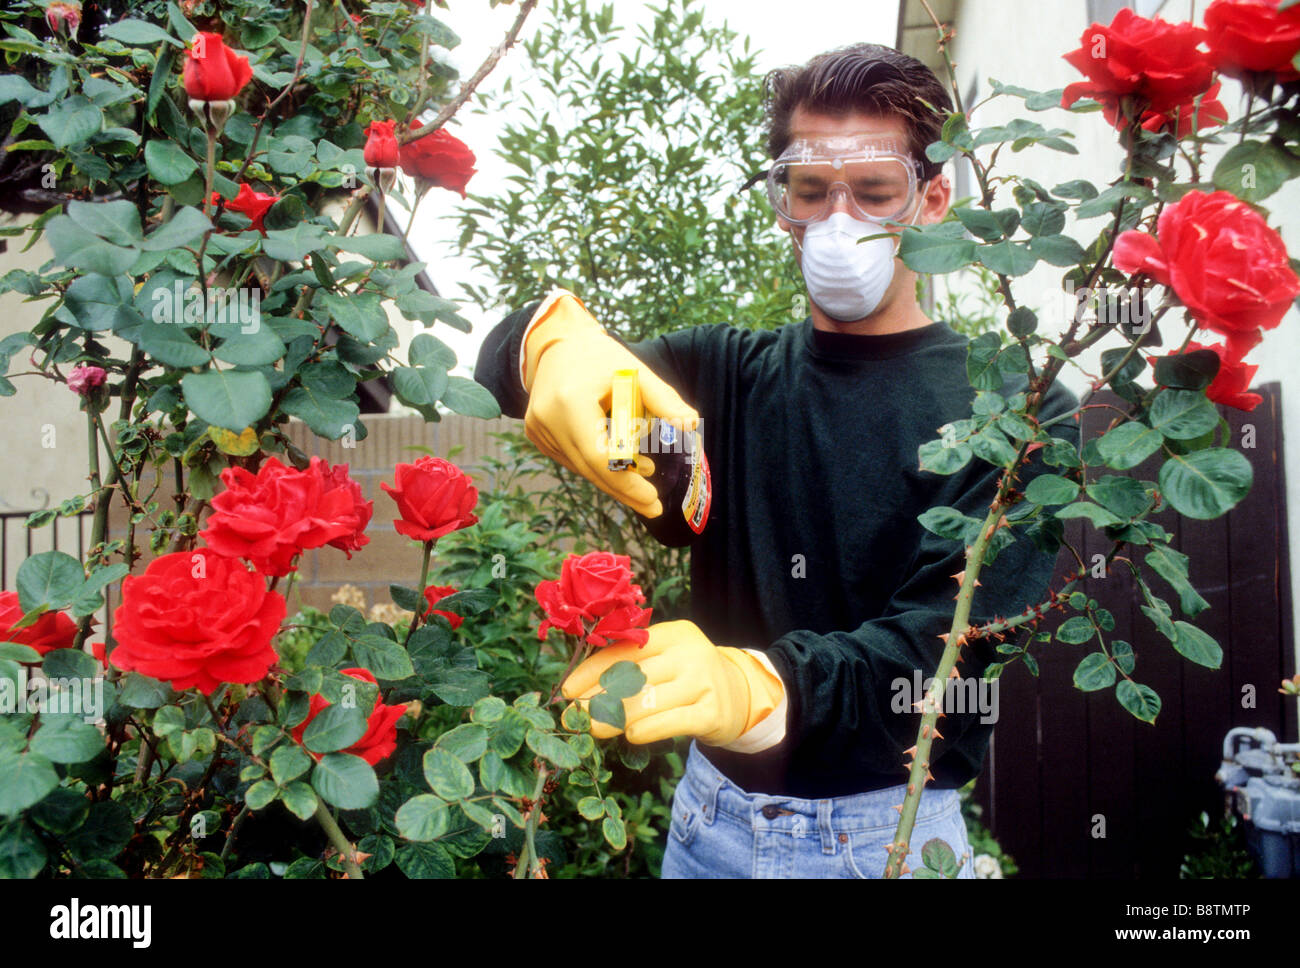 Teen boy sprays chemical onto rose bush to control pest bug insect fungus rubber glove protect fertilizer bottle - Stock Image